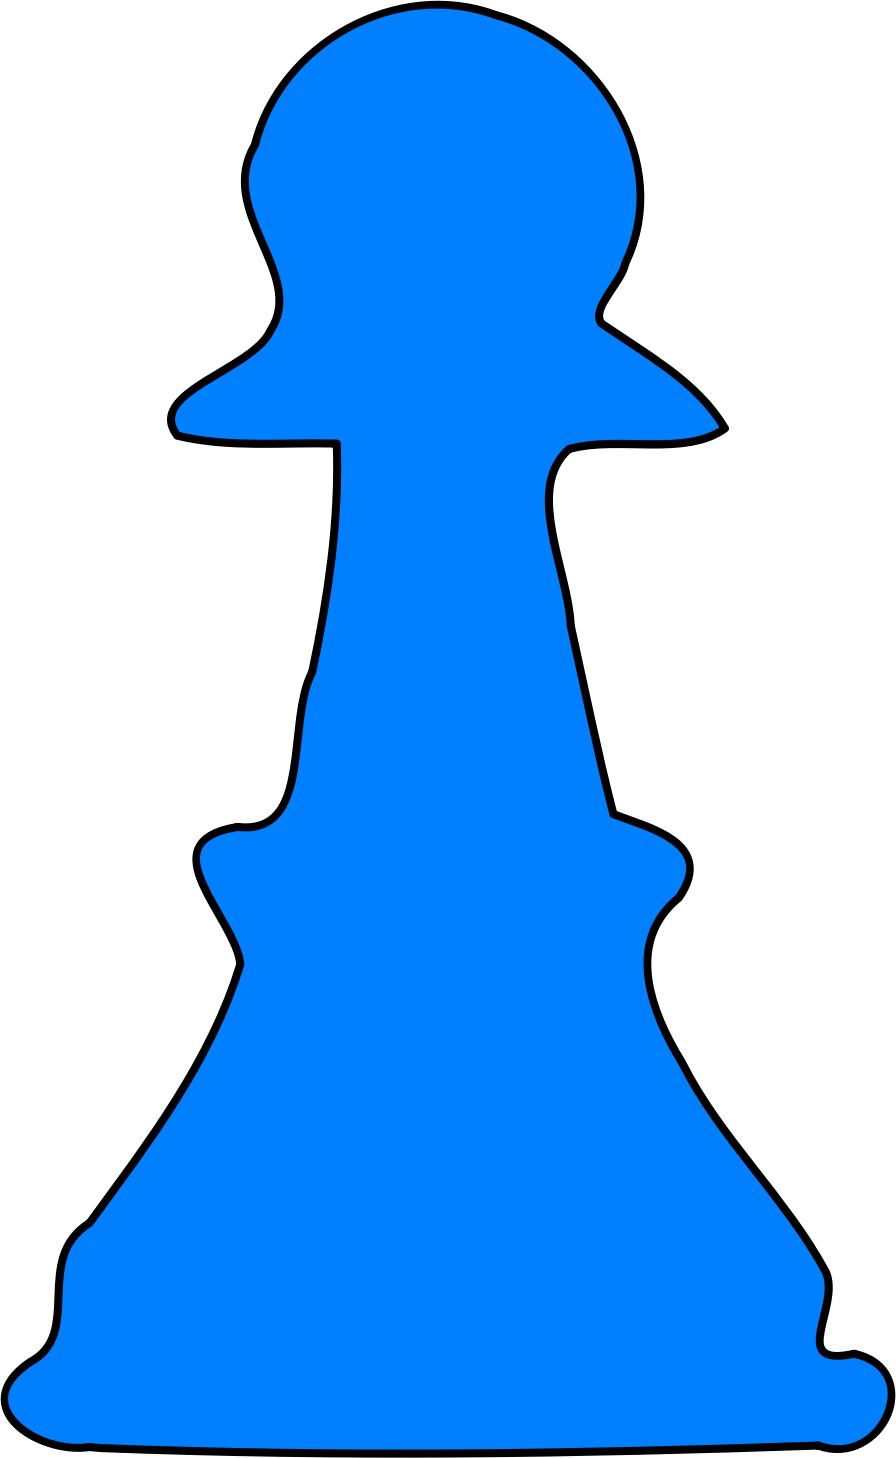 blue pawn by Spade